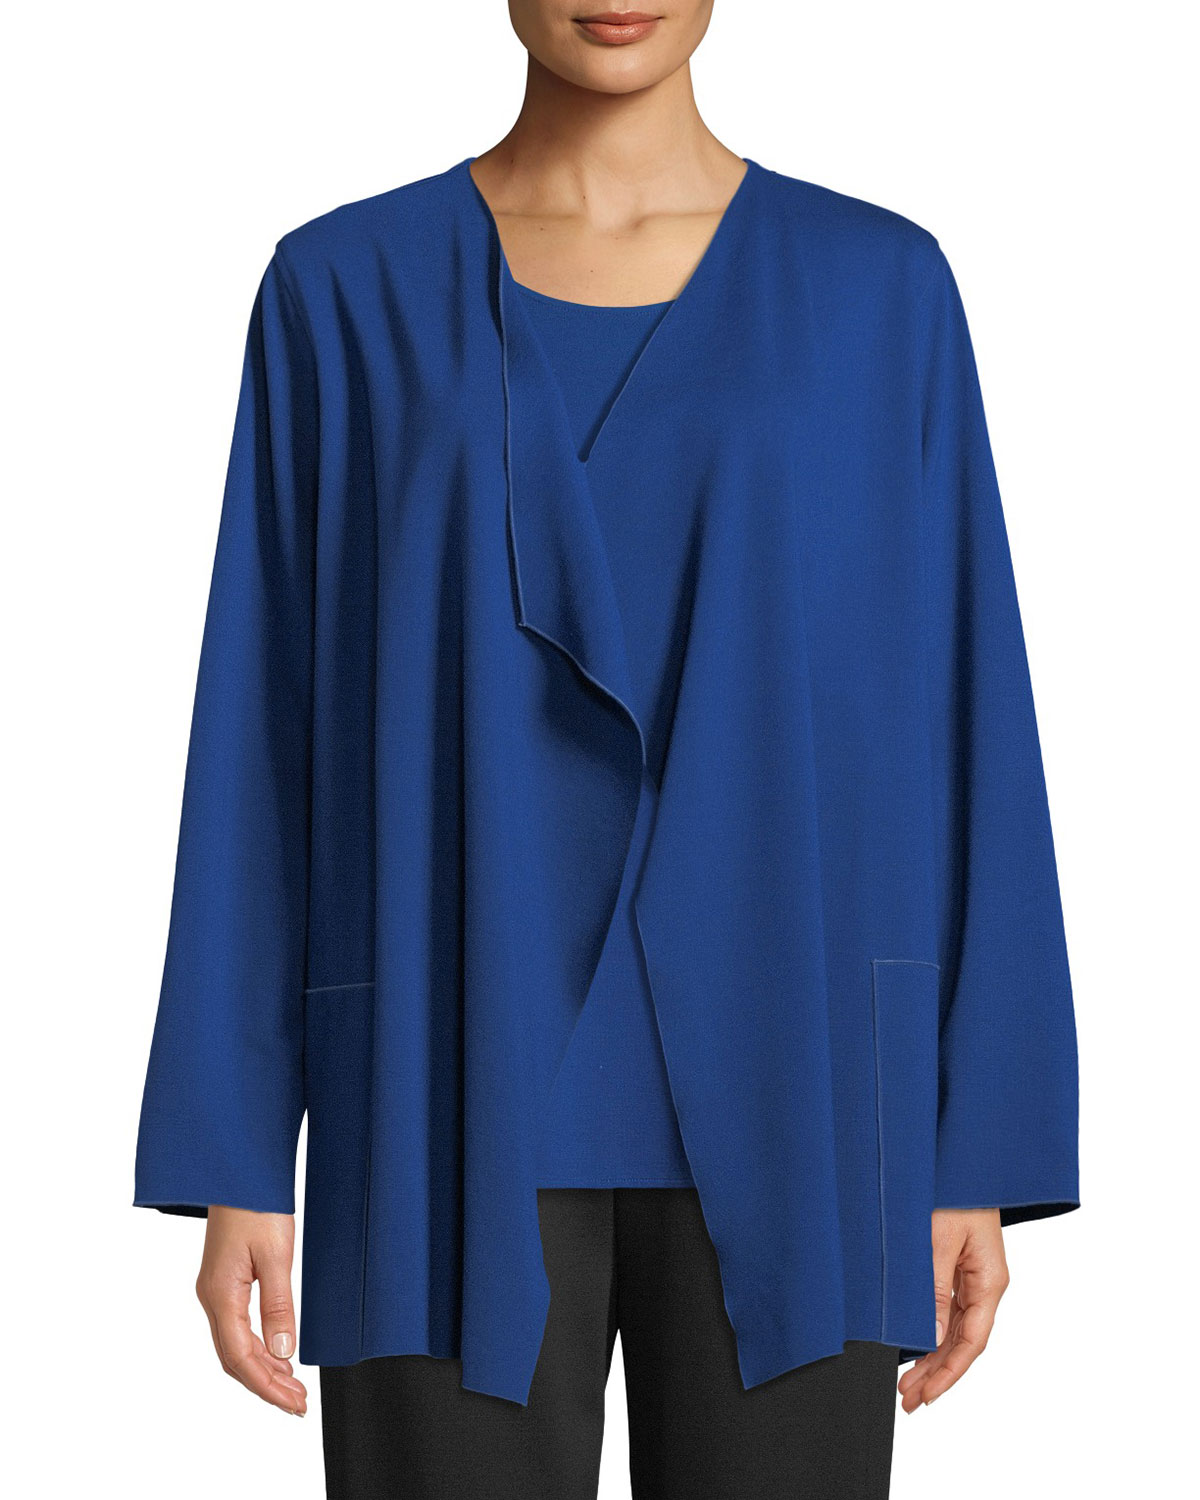 Ponte Luxe Saturday Jacket w/ Pockets, Plus Size